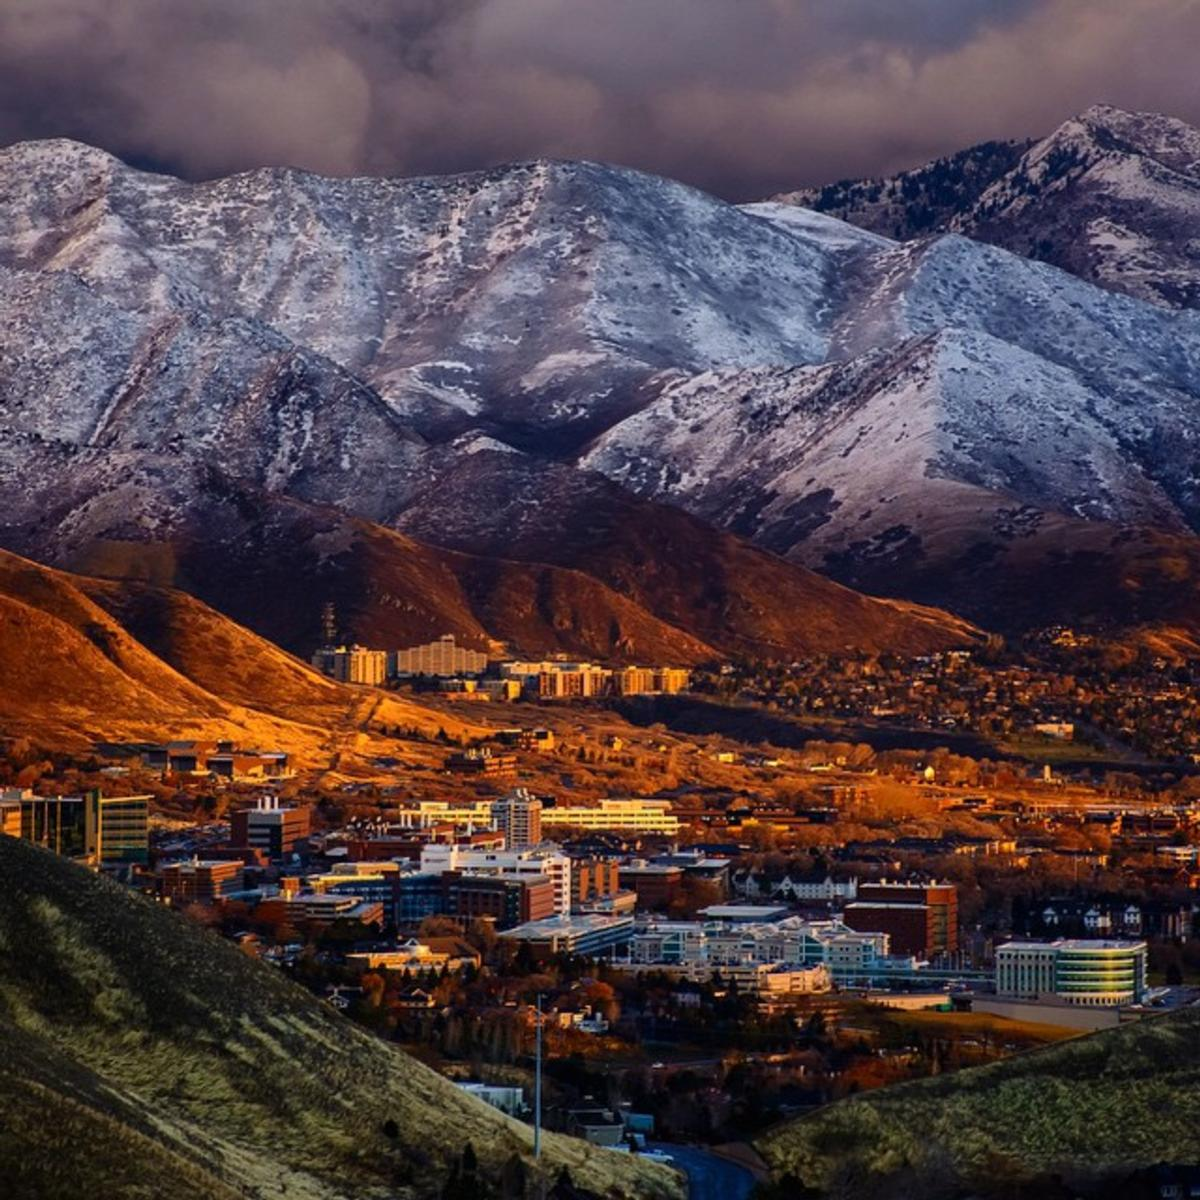 Home-Salt-Lake-City-Photos-I-ve-seen-the-city-look-like-this-many-times-and-I-m-always-amazed-a-wallpaper-wp5207536